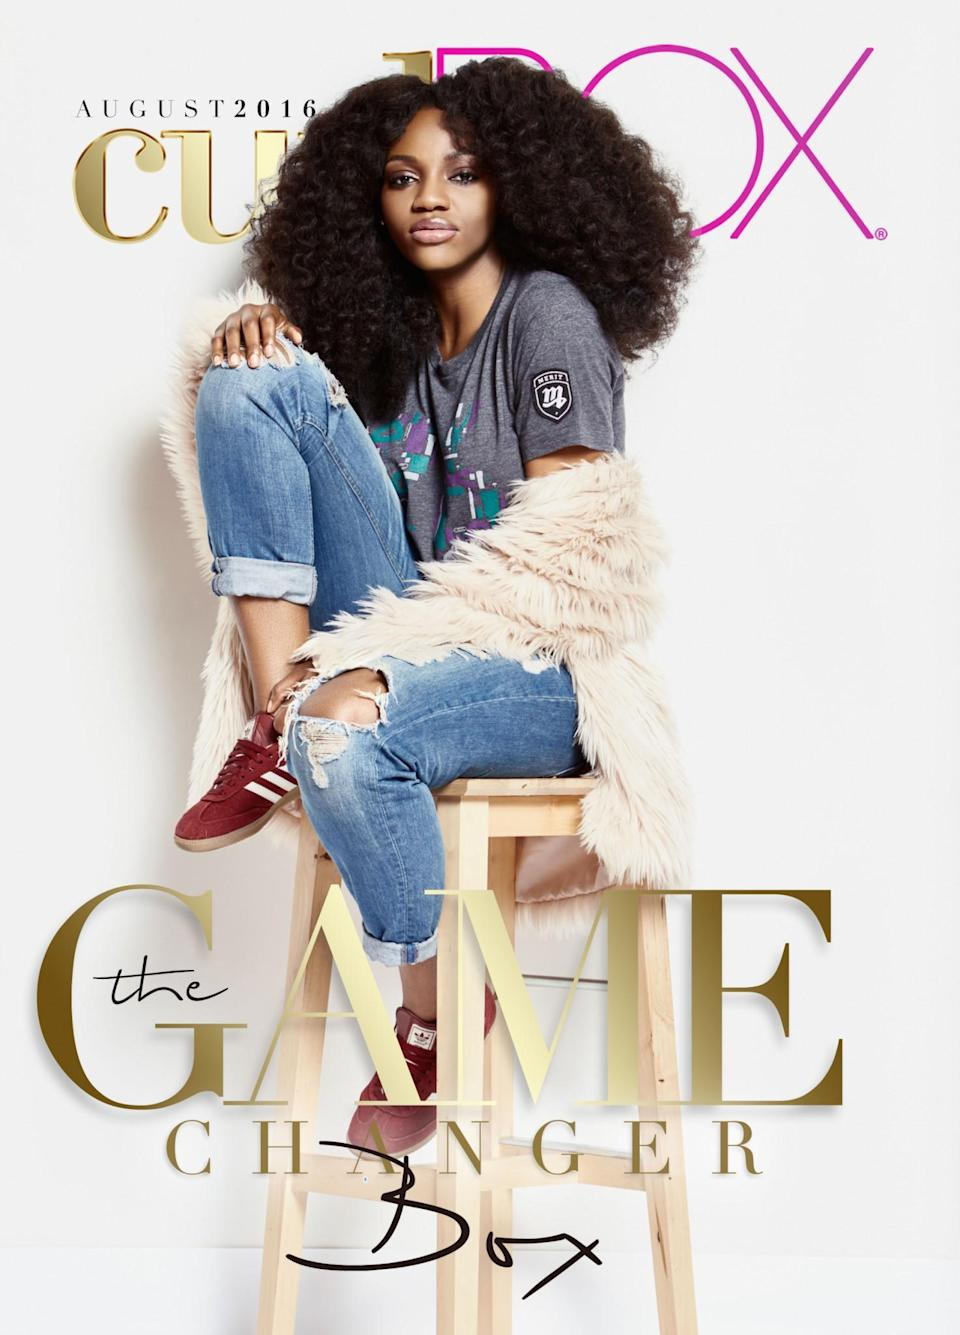 """<p>""""Since 2011, curlBOX has been a force in the haircare and beauty category by providing a unique service of content, media, and products to a growing audience that is continuing to reflect the ethos of the mainstream culture – beauty comes in all shapes, colors and sizes. As a result of our strong focus on our brand mission, curlBOX continues to gain traction nationwide by serving a lucrative, niche market,"""" says founder and CEO of curlBox Myleik Teele. """"It has changed the way women try and purchase haircare products. Our monthly box delivers full and sample sized products designed for naturally curly hair."""" Visit <a rel=""""nofollow noopener"""" href=""""http://www.curlbox.com/16/home.htm"""" target=""""_blank"""" data-ylk=""""slk:curlBOX"""" class=""""link rapid-noclick-resp"""">curlBOX</a> for more info. </p>"""